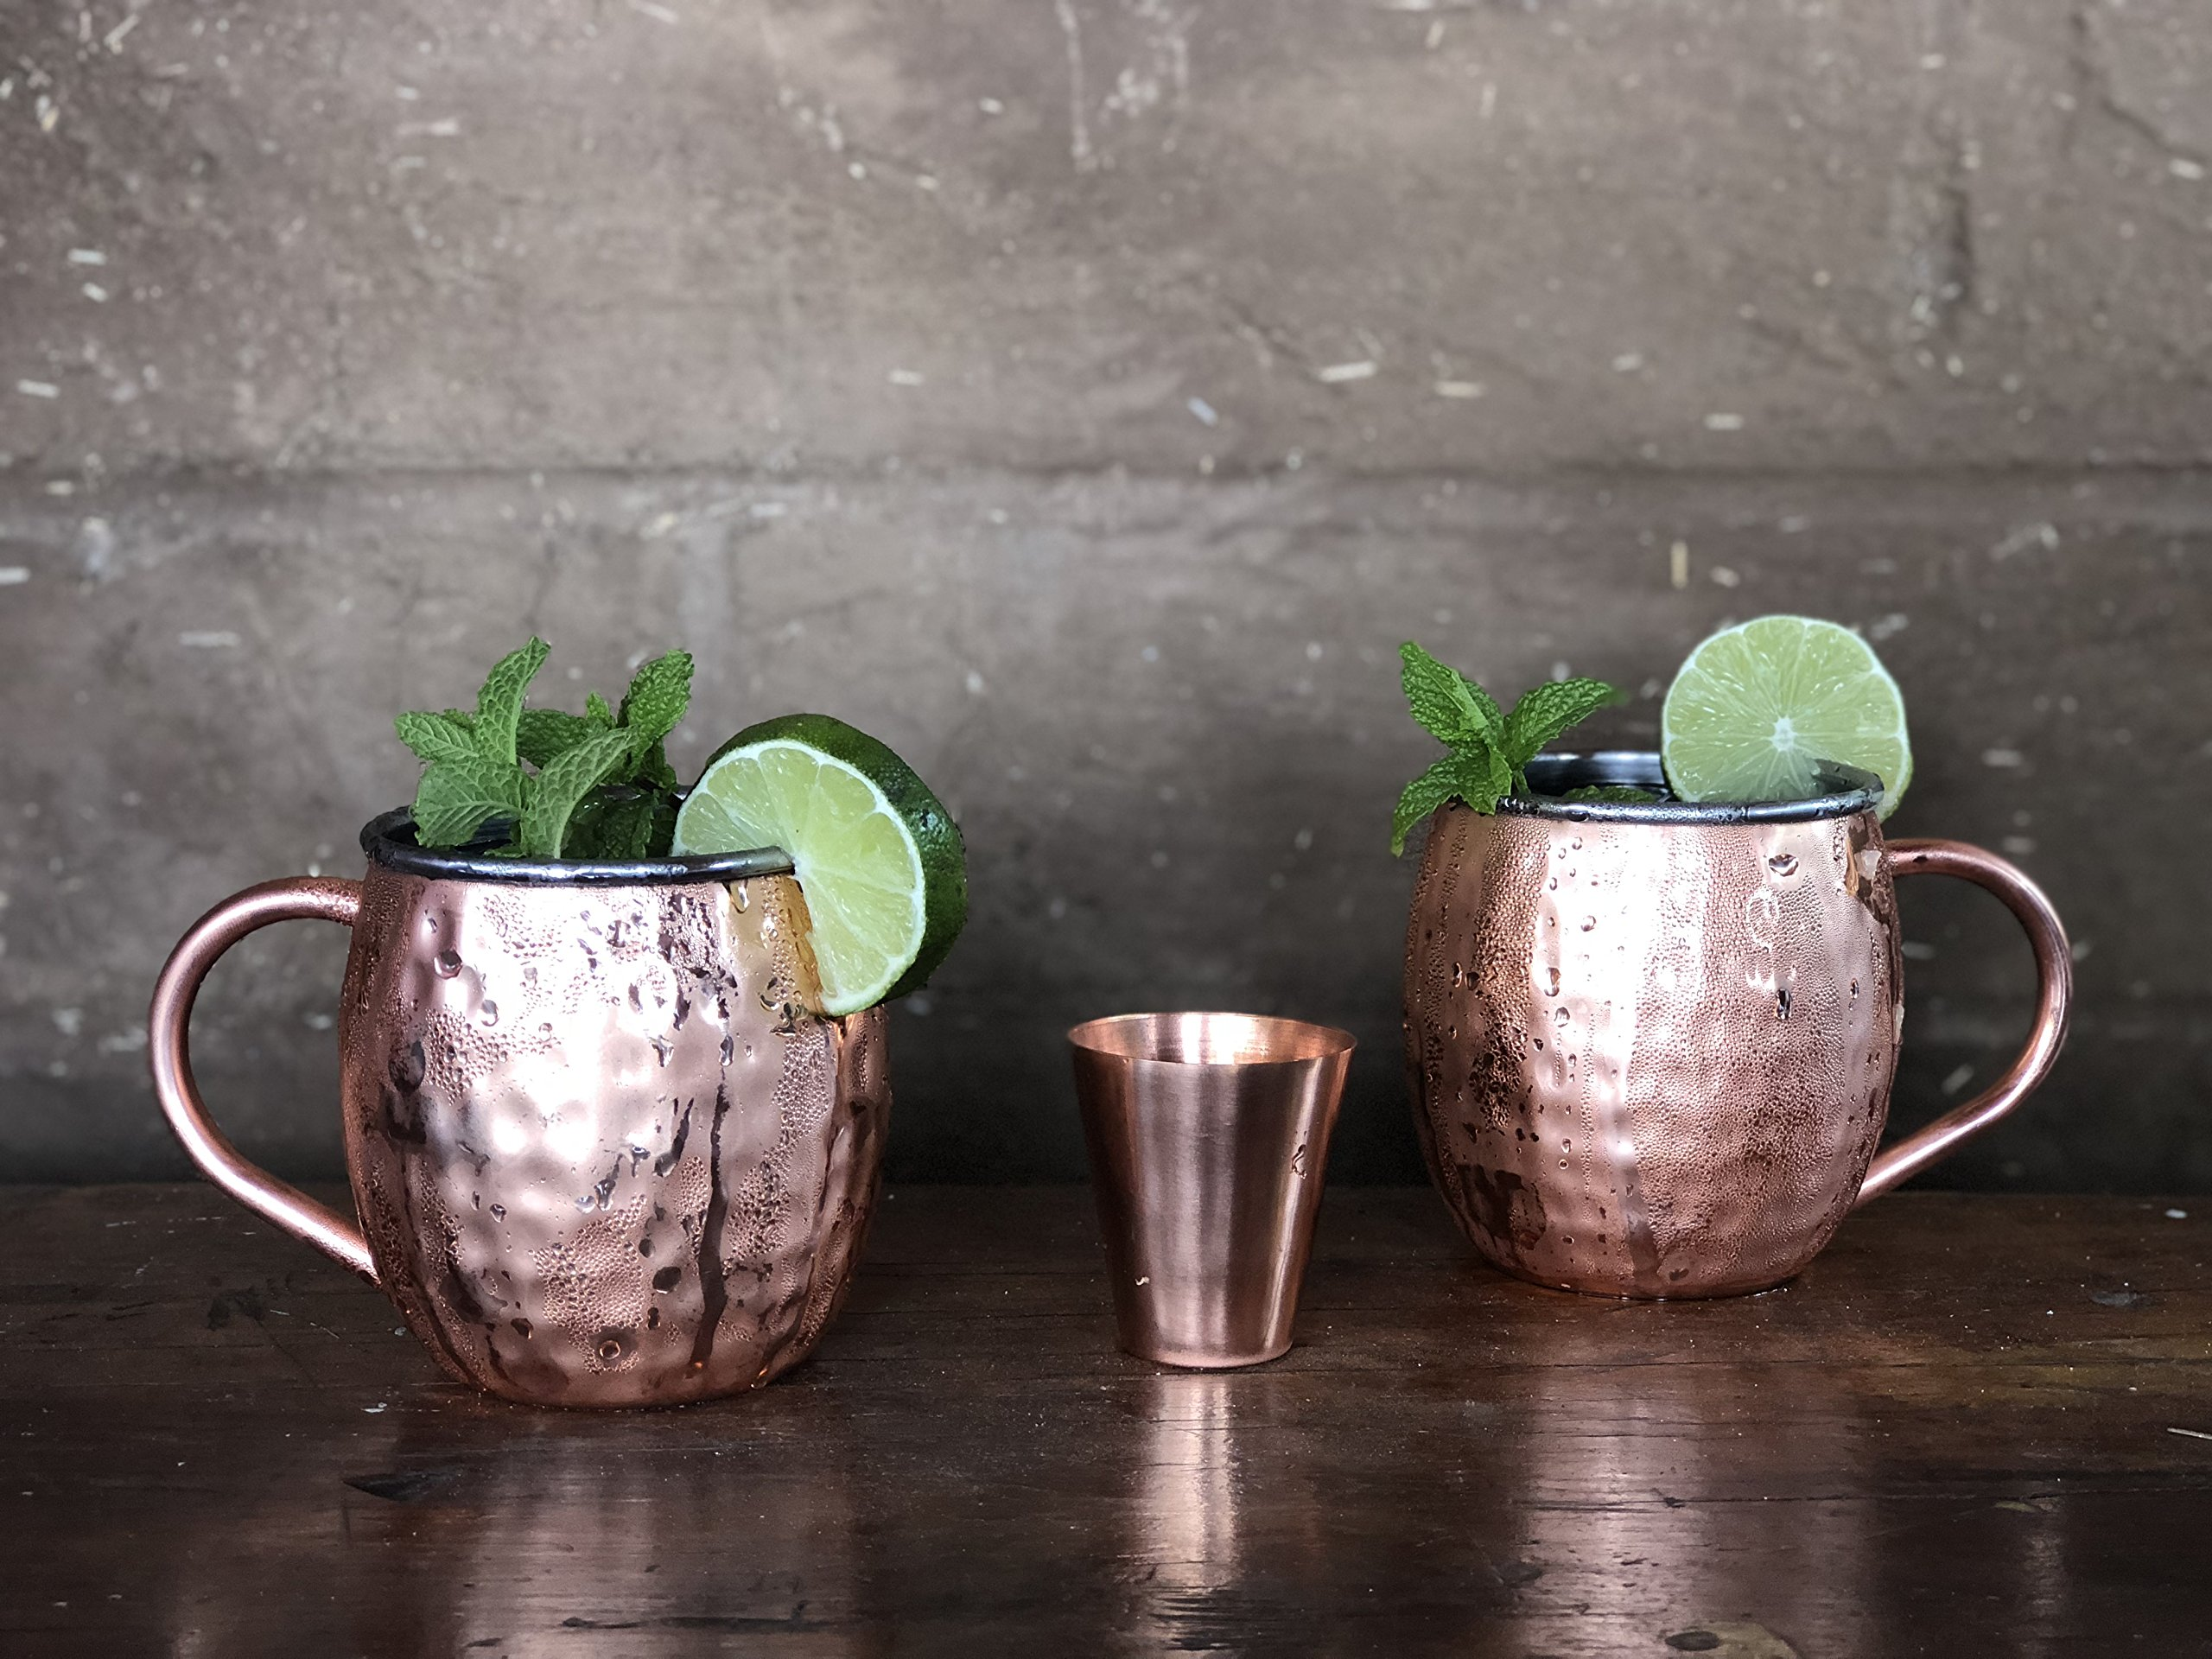 Set of 2 Moscow Mule Copper Mugs with Stainless-Steel Lining | Set of 2 Moscow Mule Mugs with Copper Shot Glass | Set of 2 Mule Mugs Lined with Stainless-Steel, Mint Julep Mugs for Home Bar by Urban Vintage LA (Image #3)